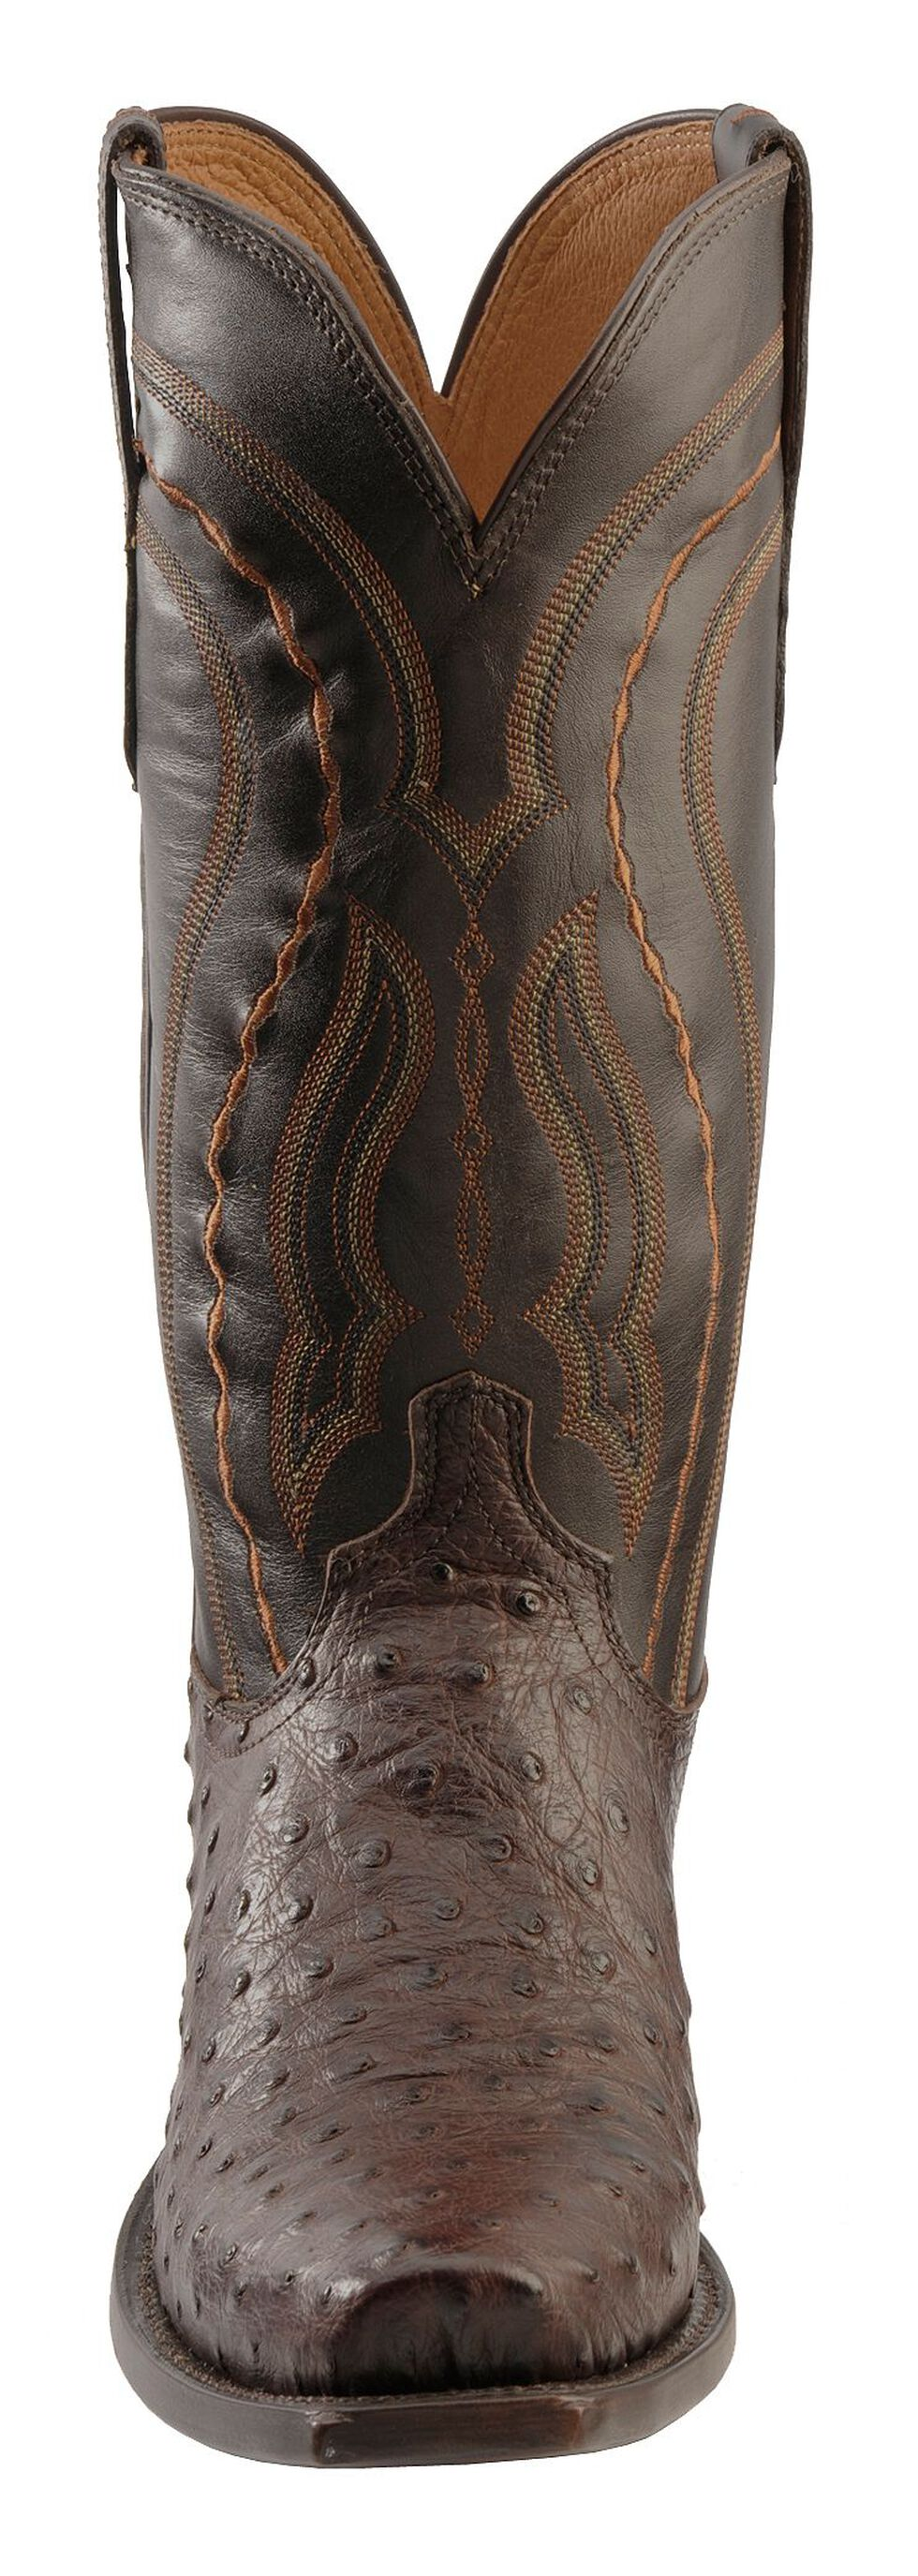 Lucchese Handcrafted 1883 Western Full Quill Ostrich Cowboy Boots - Square Toe, Sienna, hi-res